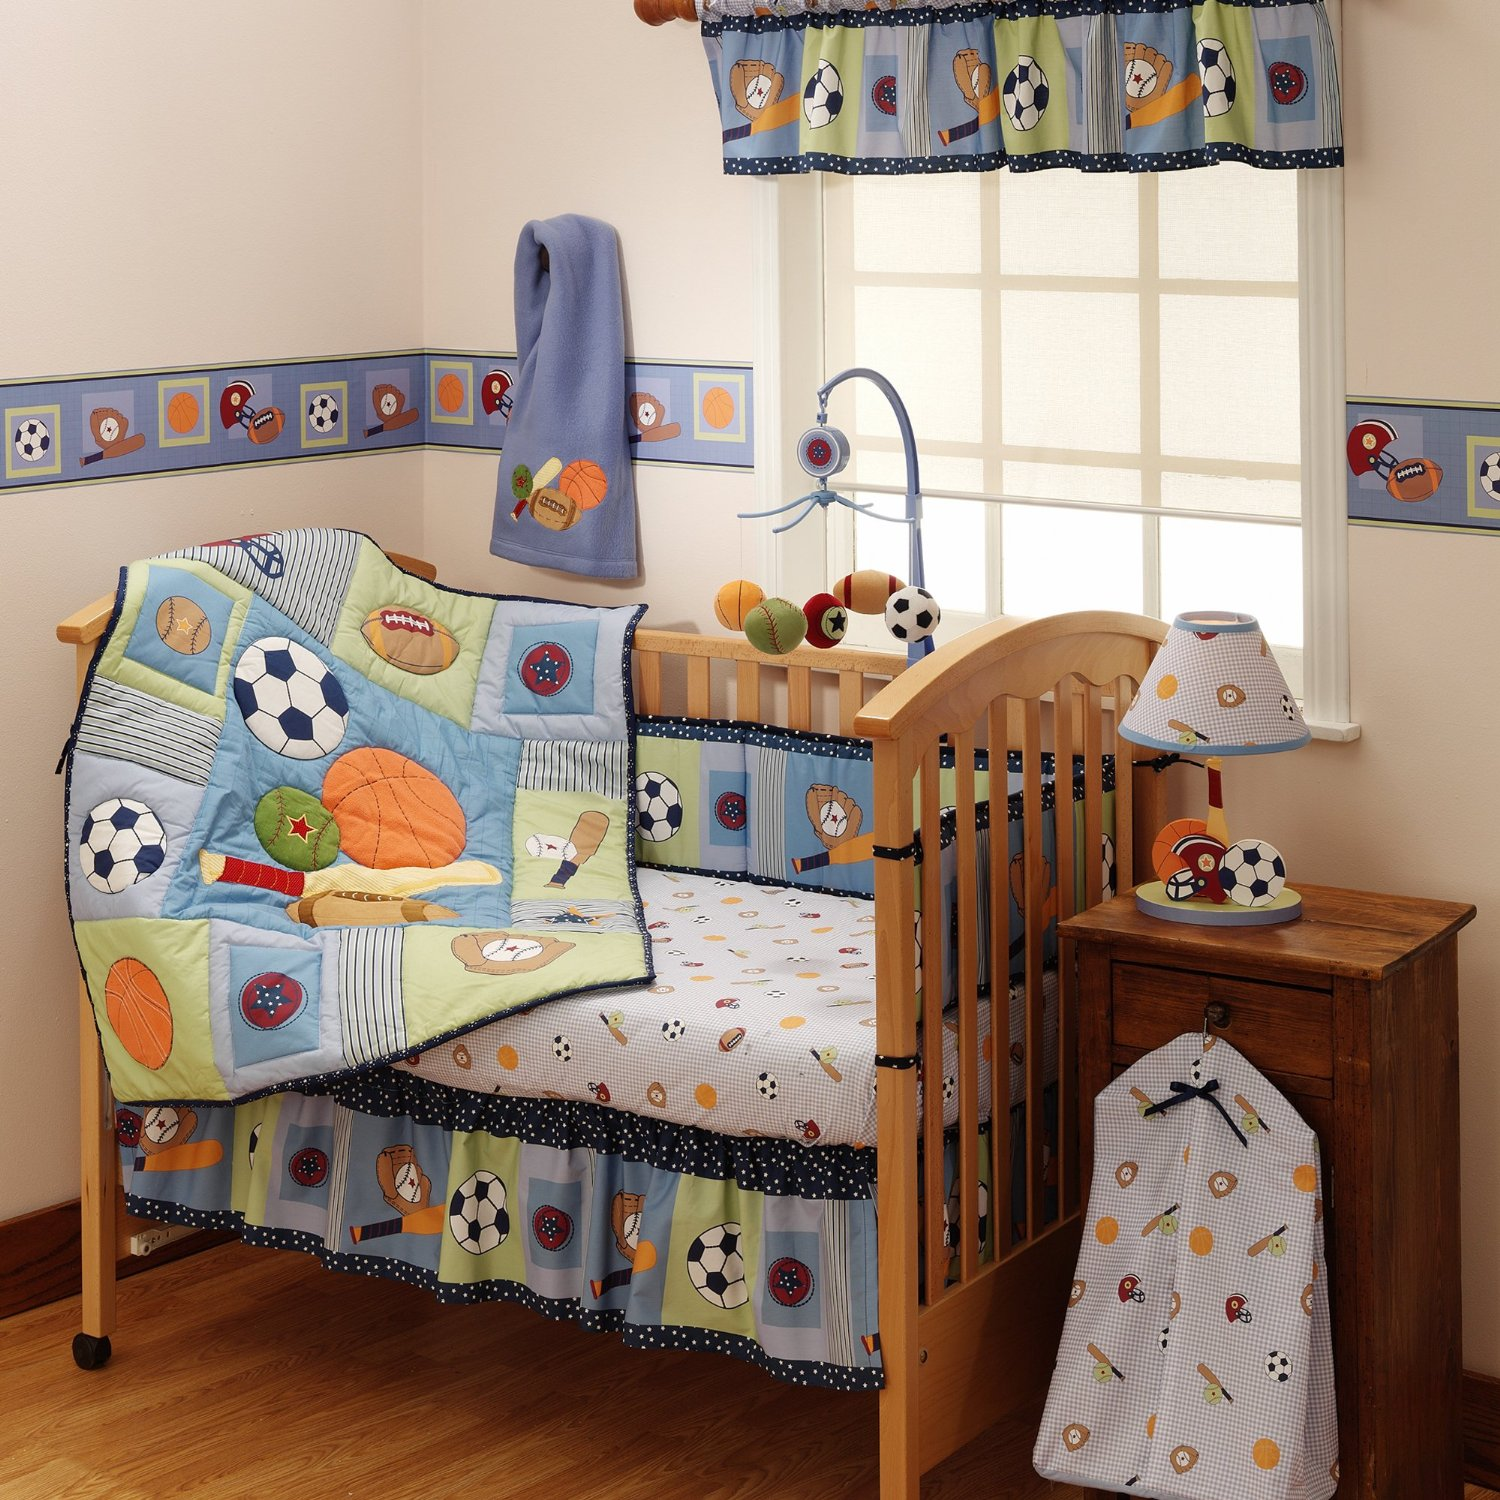 Bedtime Originals Super Sports Baby Bedding And Decor Baby Bedding